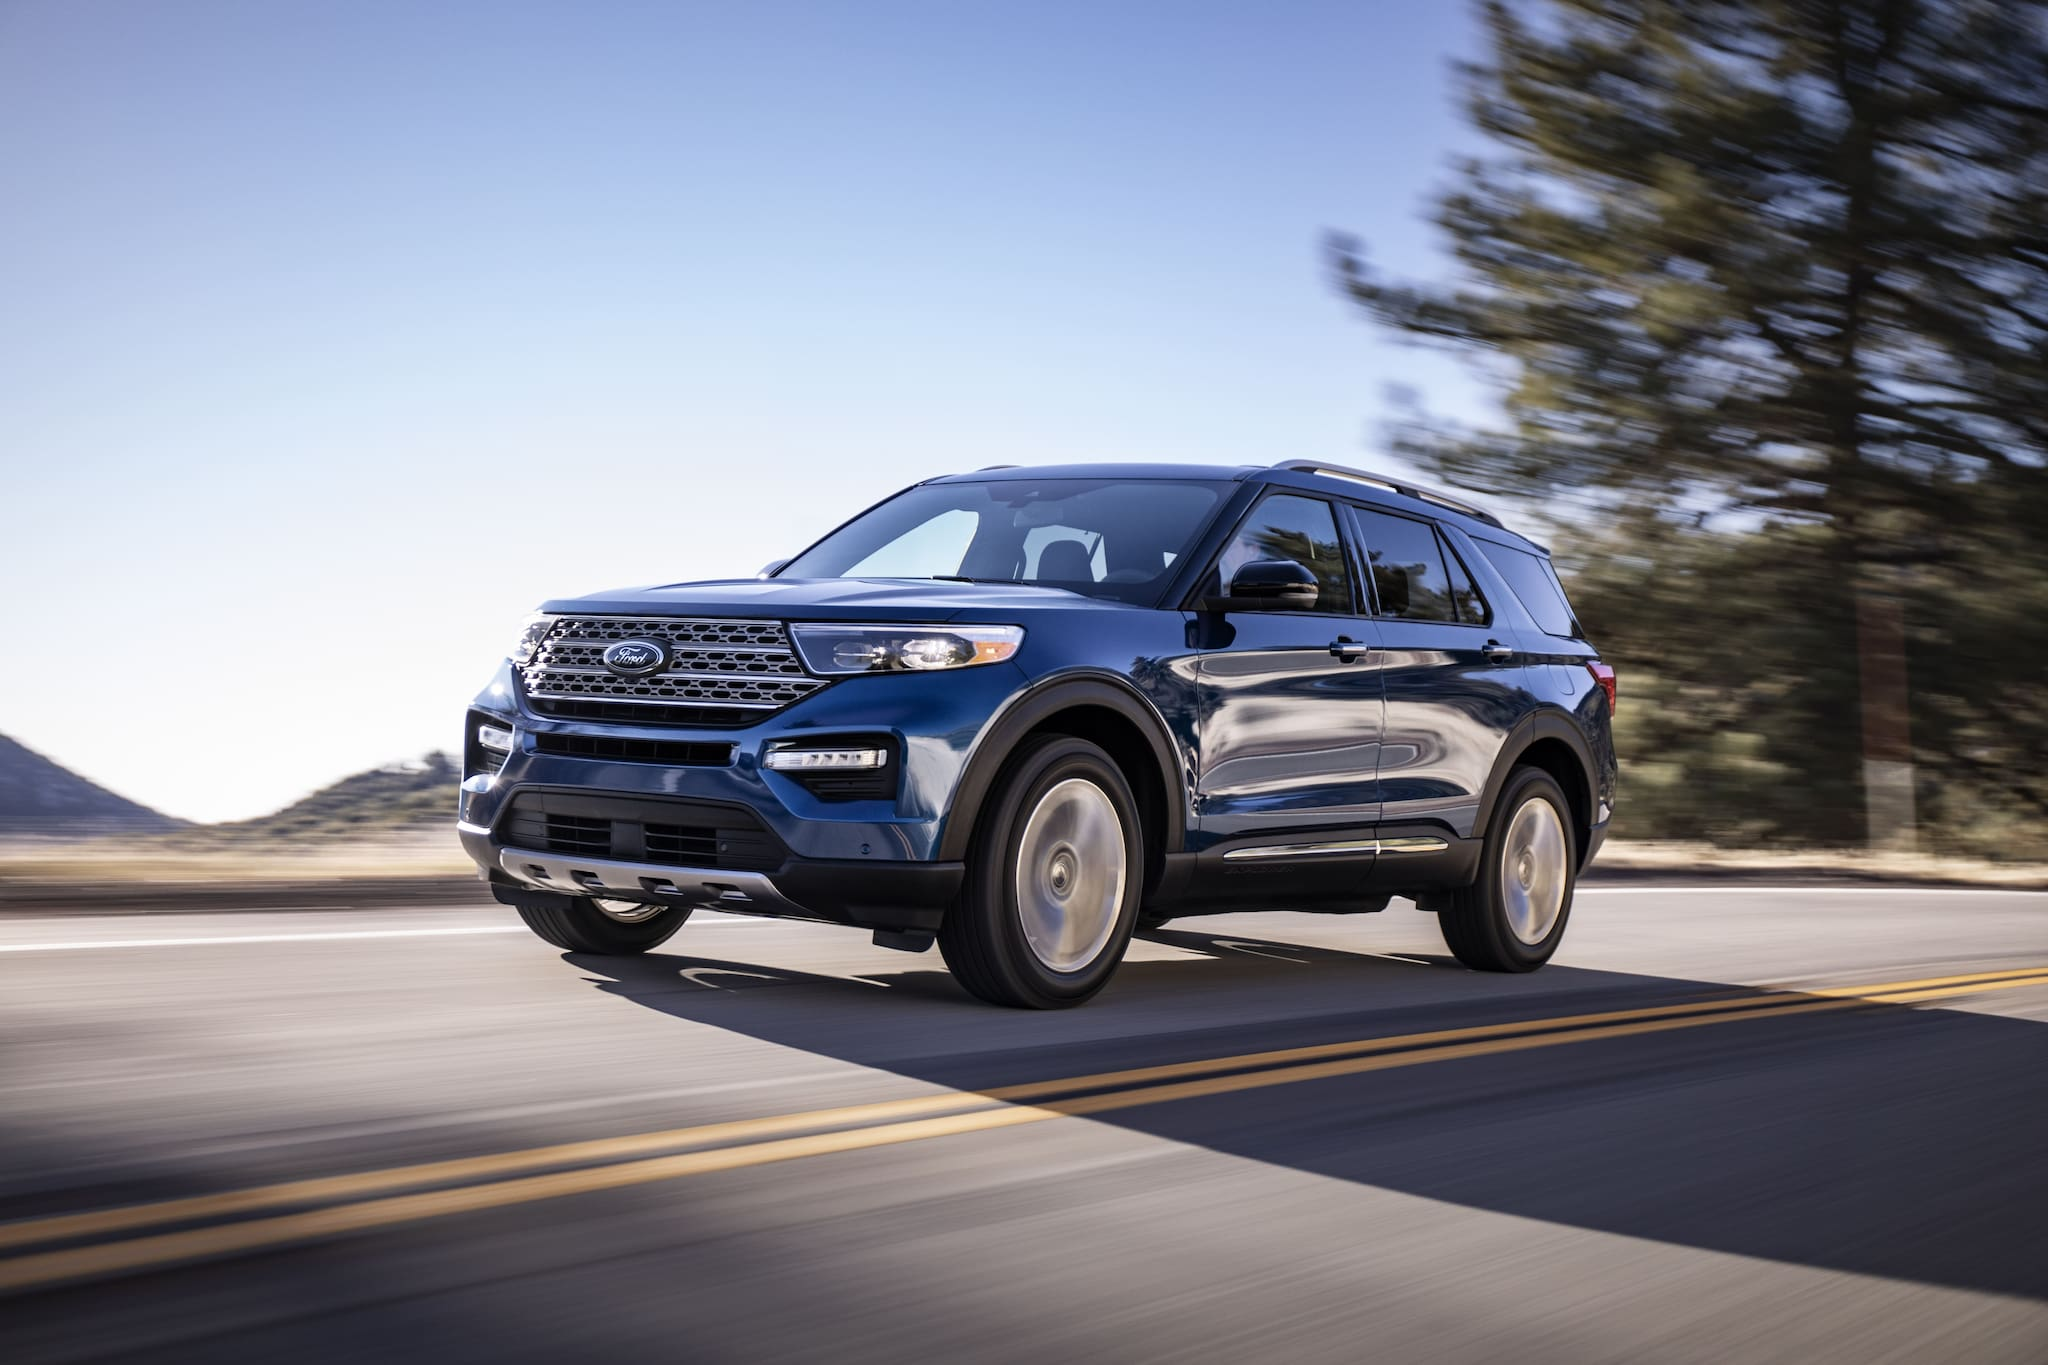 2020 Ford Explorer Will Carry Tires That Seal Their Own Punctures